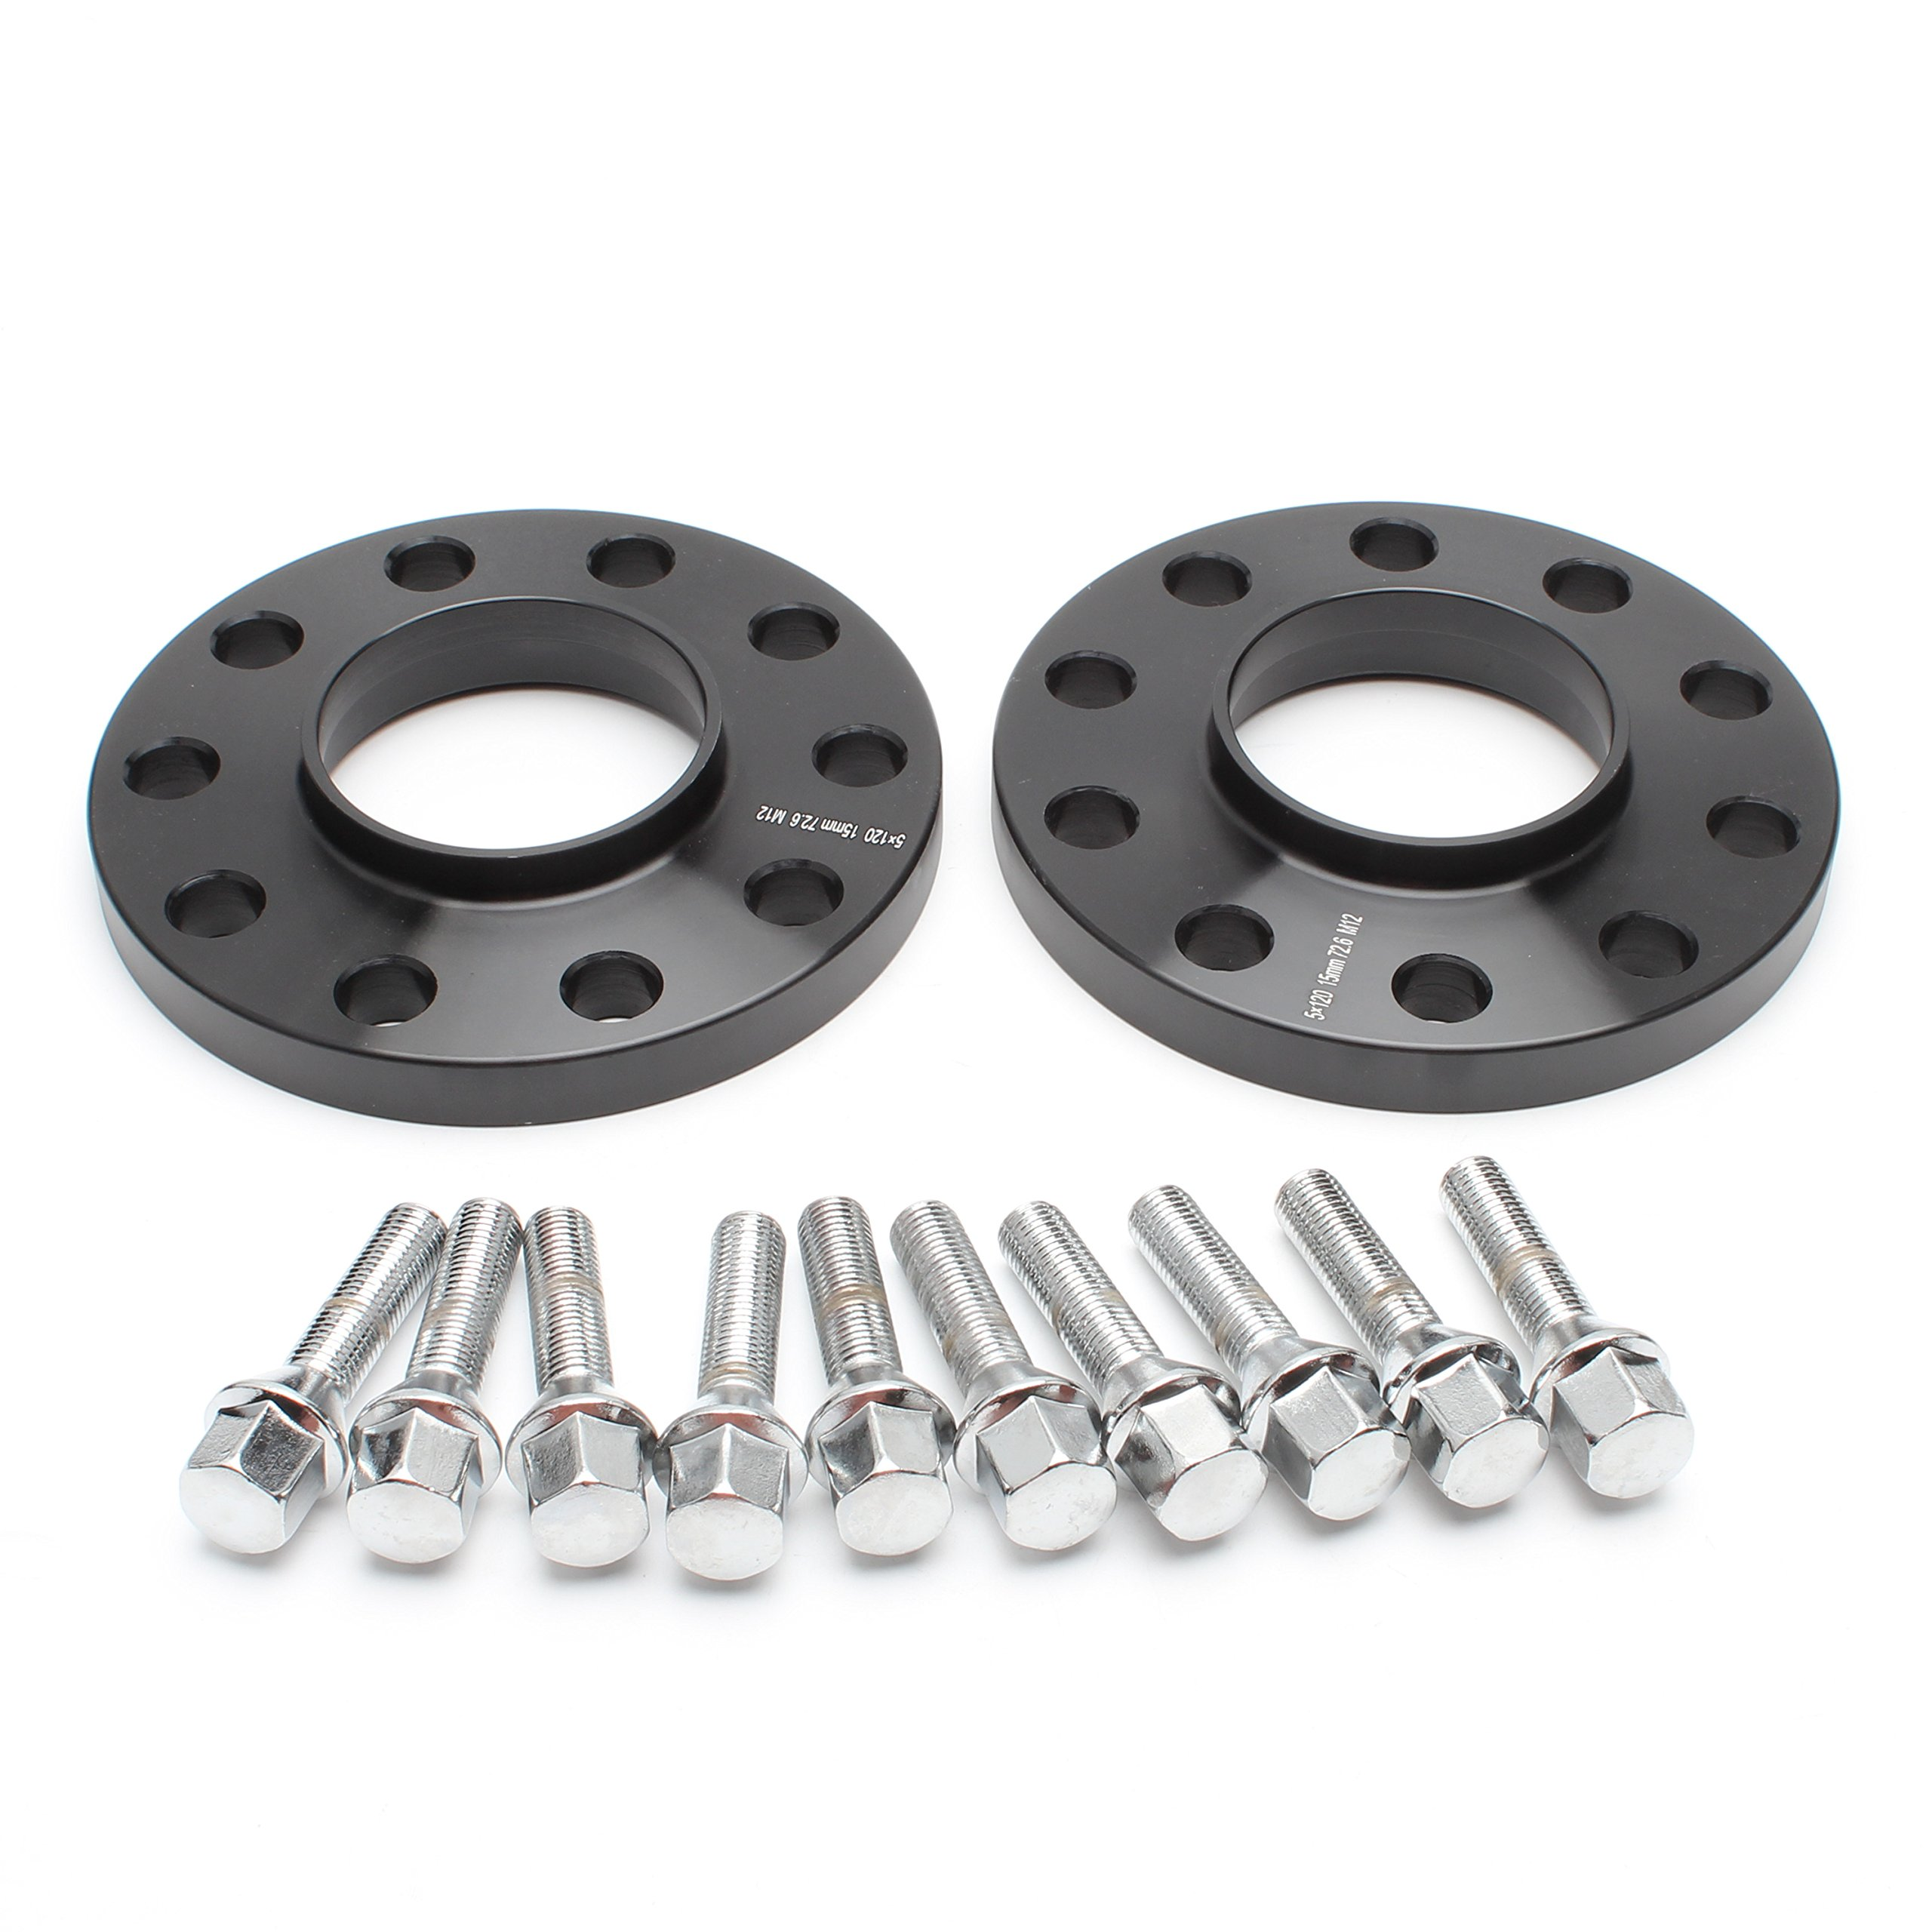 ZY Wheel 2pcs 15mm Black Hubcentric 5x120 Wheel Spacers (72.6mm bore) with 10pc Silver Lug Bolts (12x1.5) for many BMWs E36 E46 E90 E92 E60 318i 323i 325i 328i 330i 335i 525i 545i Z3 Z4 Z8 M3 X1 by ZY Wheel